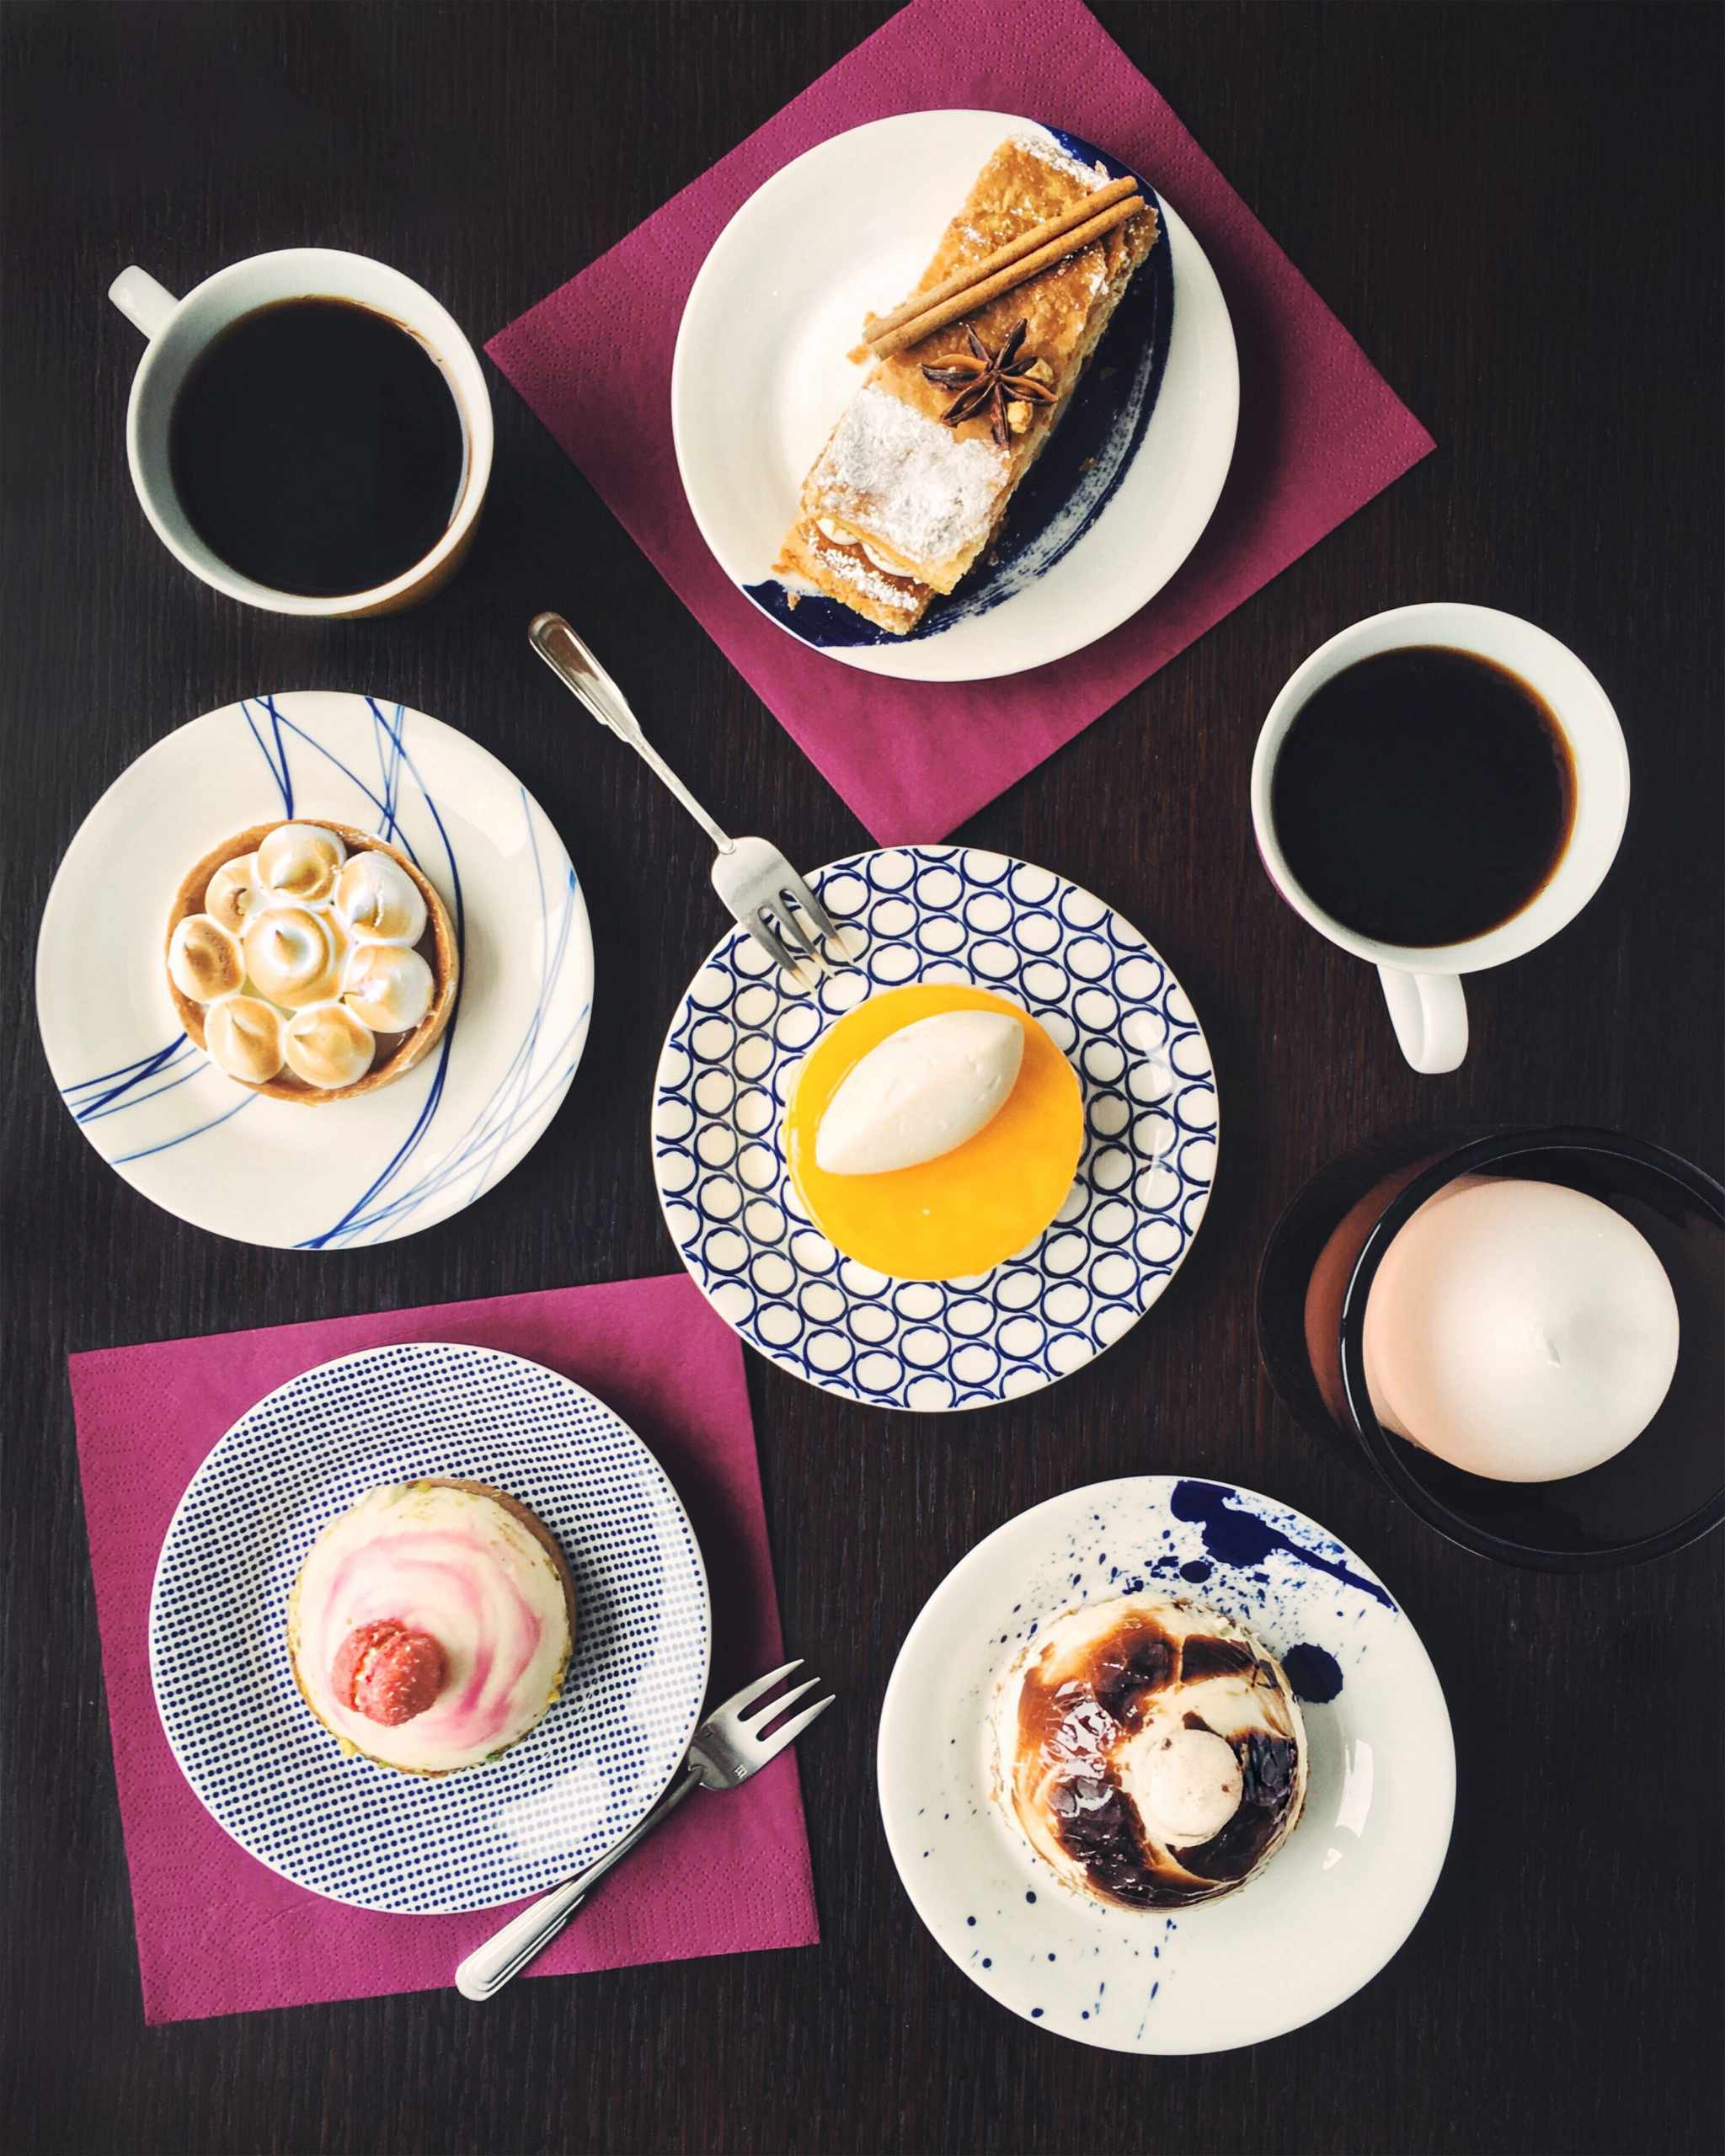 5 Delicious Pastries To Pair With Your Favorite Tea